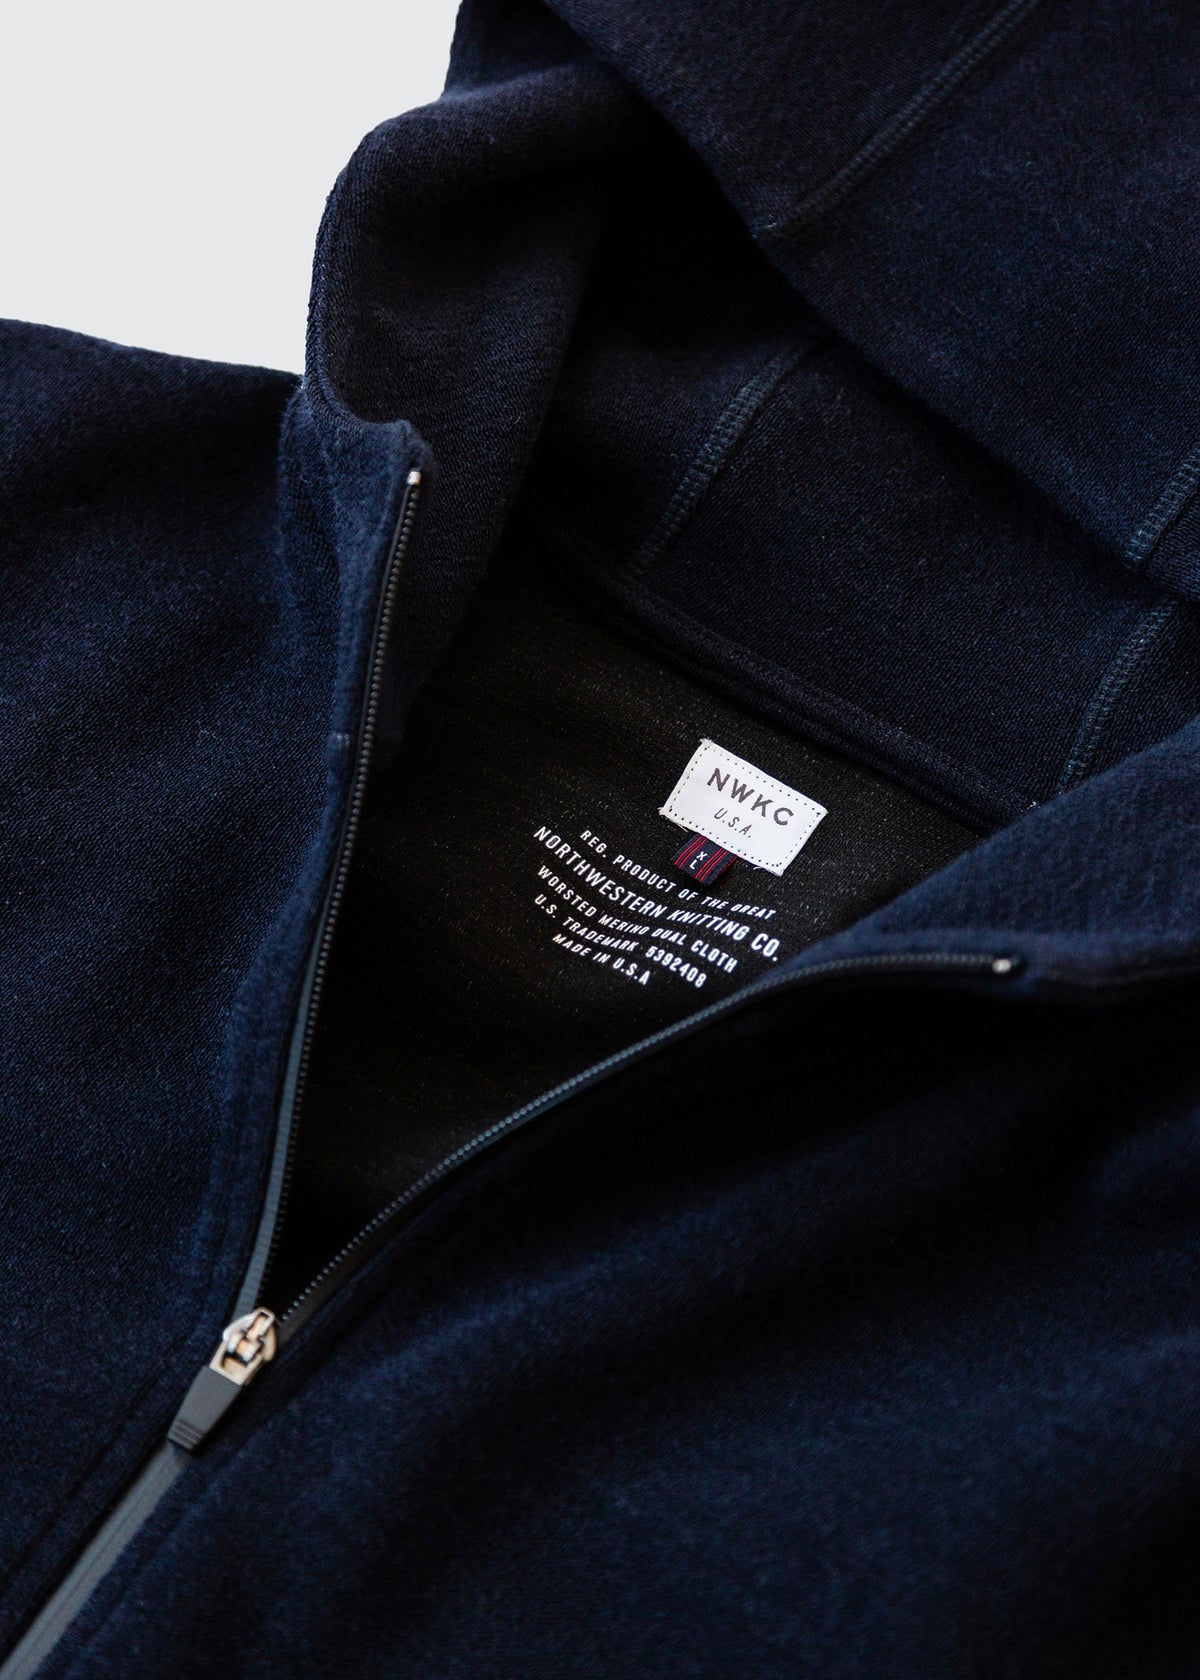 201 - NYLON HOODED ZIP - NAVY - Wilson & Willy's - MPLS Neighbor Goods